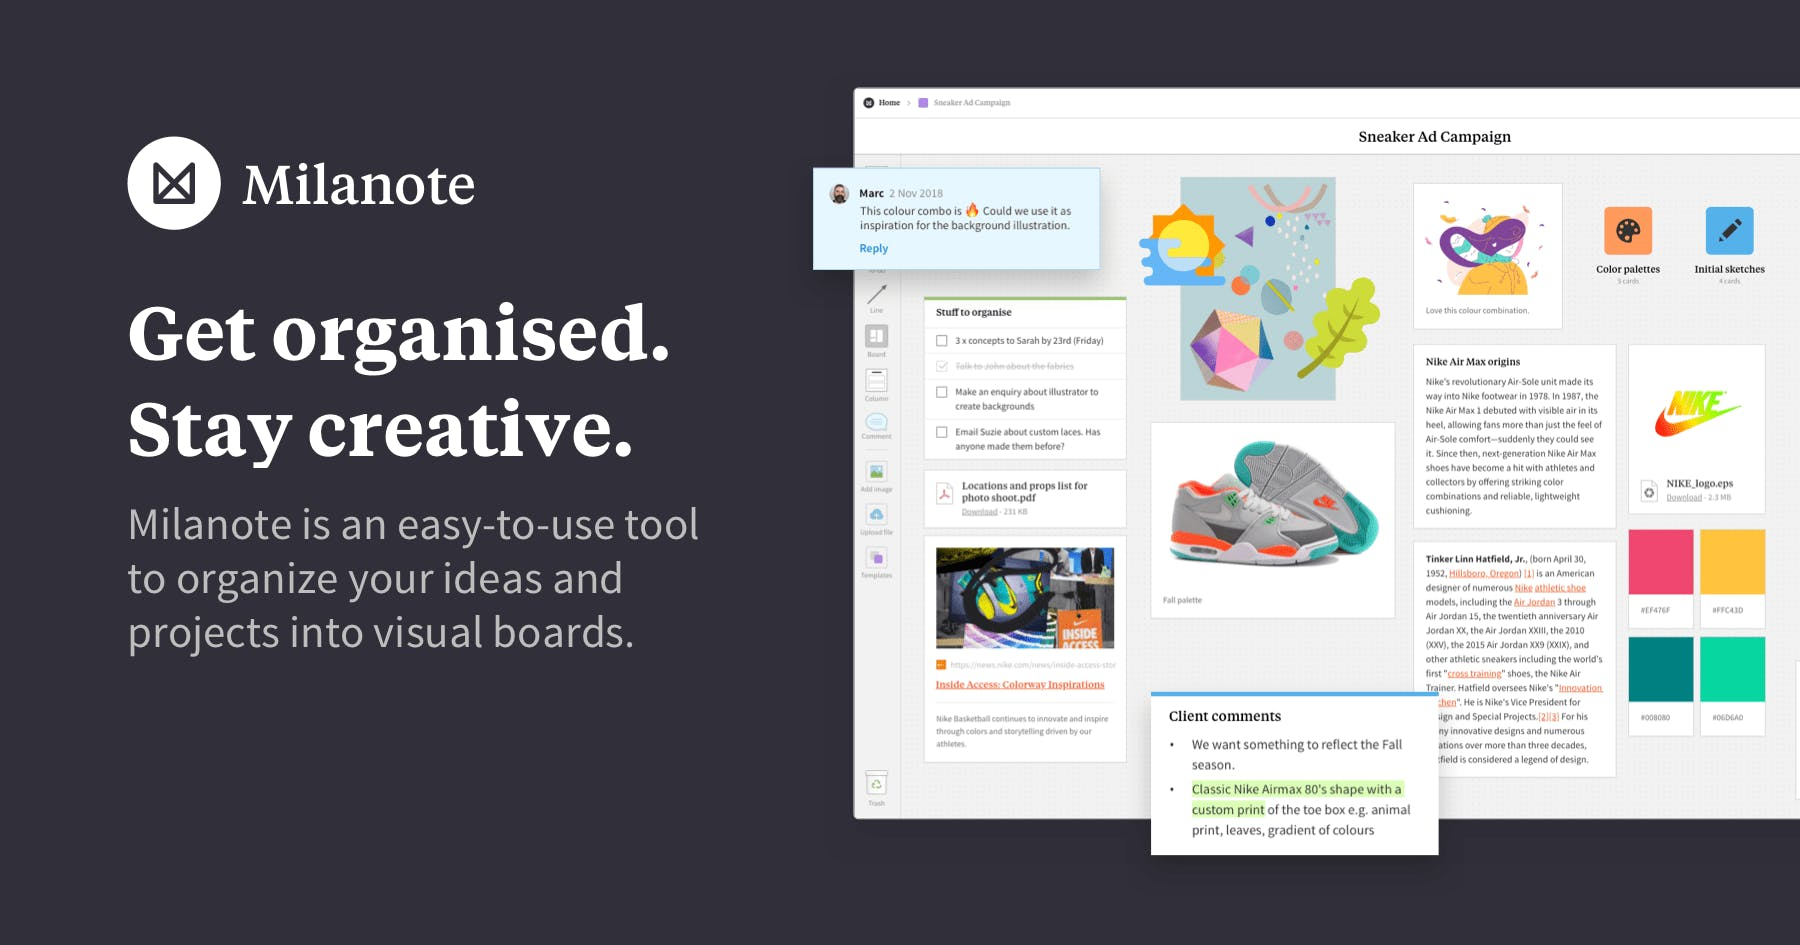 Milanote – the tool for organizing creative projects